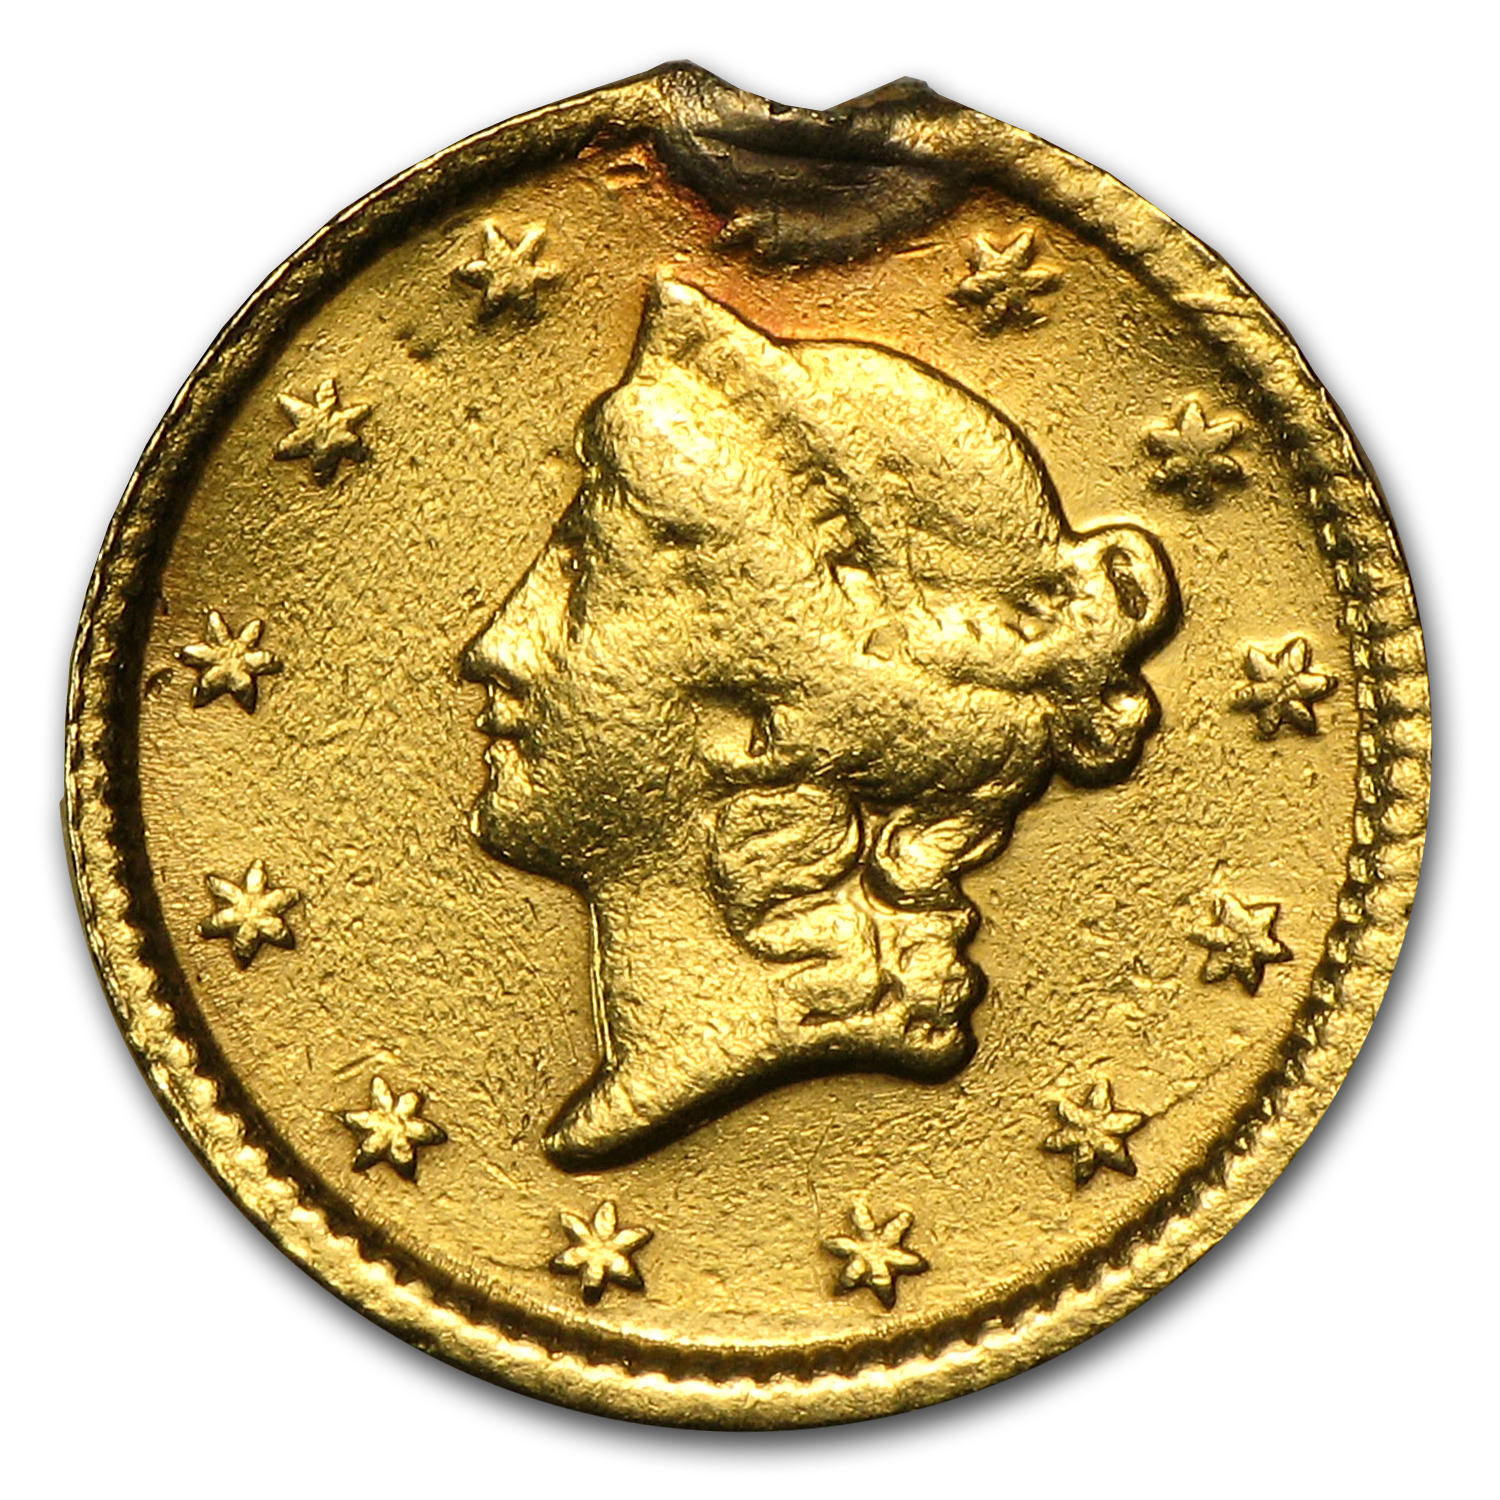 $1.00 Liberty Gold-Type I - No Date Love Token - Minnie